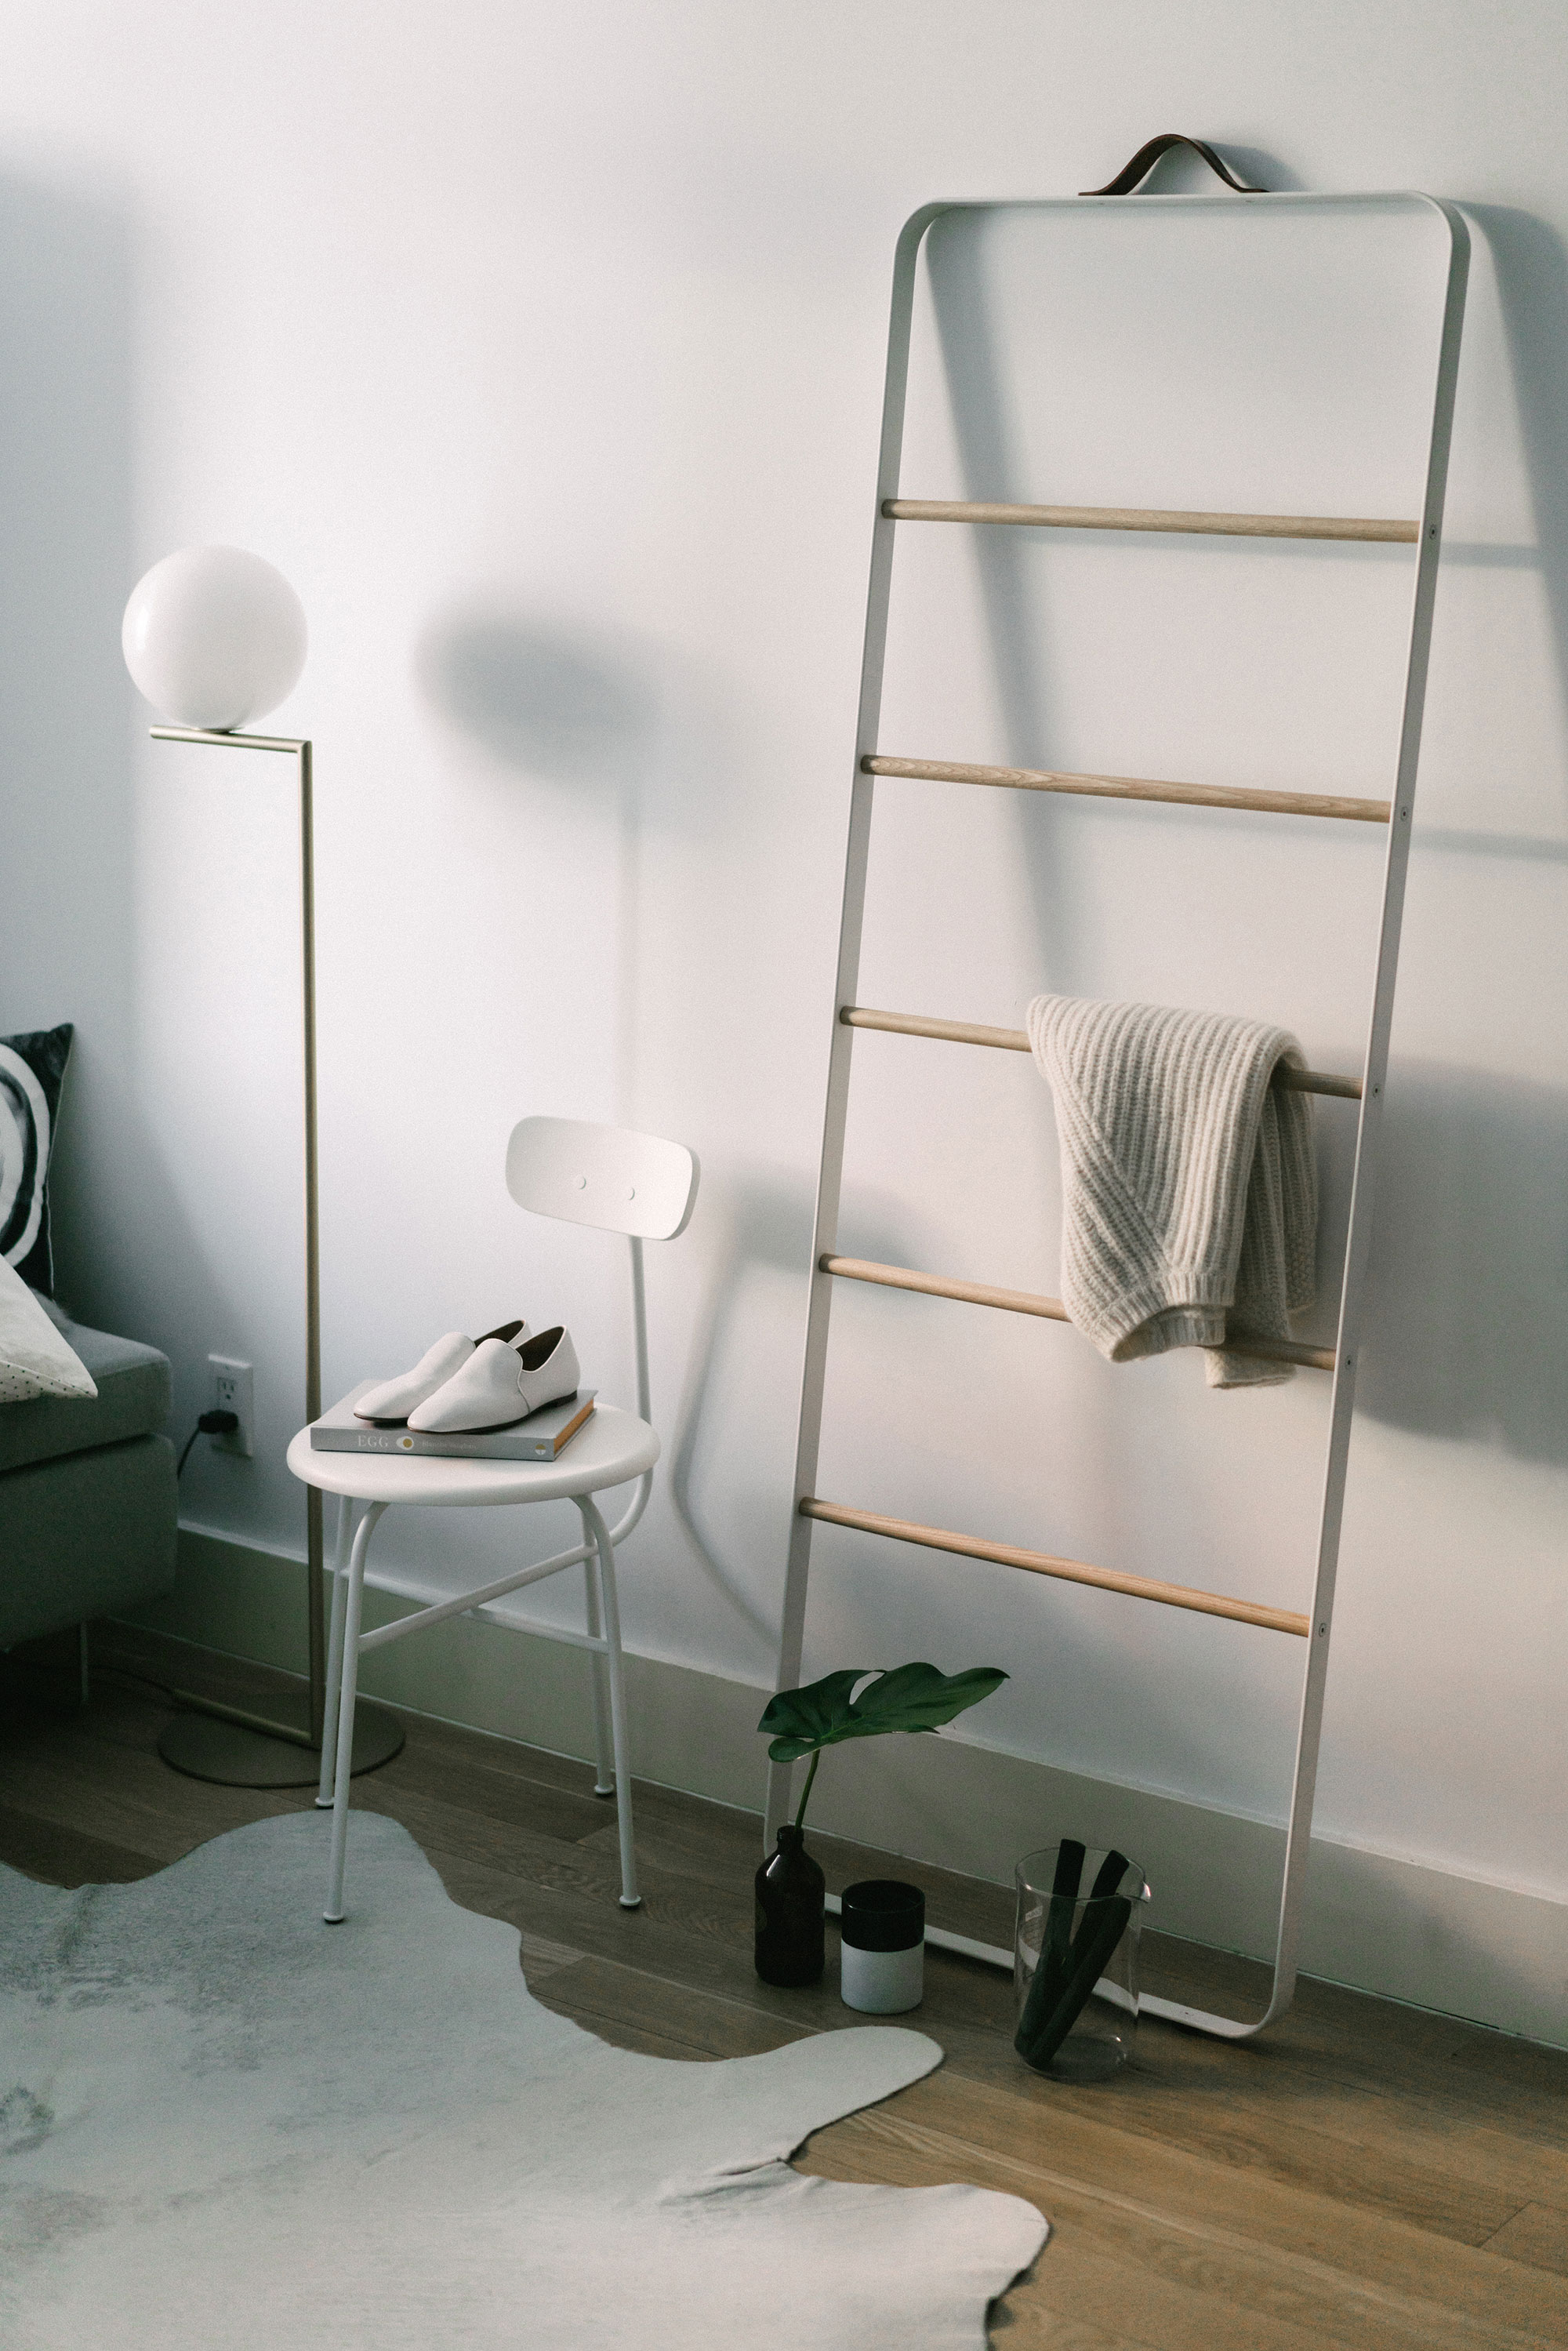 At home –  Flos Lamp ,  Menu Chair  and  Ladder ,  The Row Shoes ,  Nili Lotan Sweater